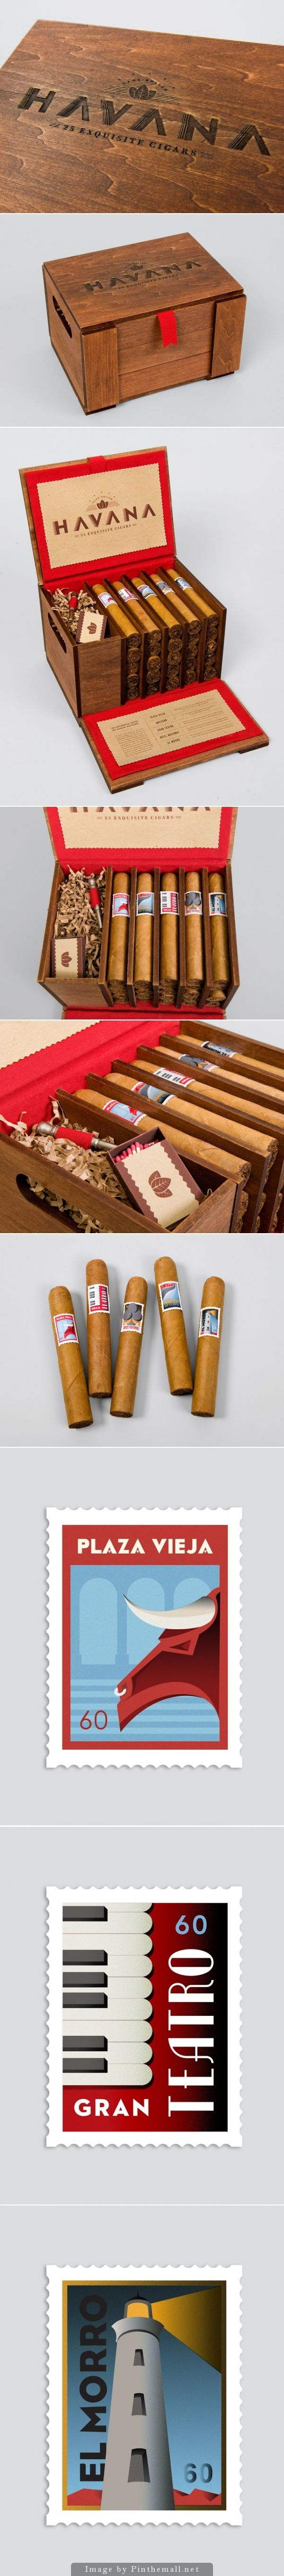 Havana Cigars (Student Project) PD